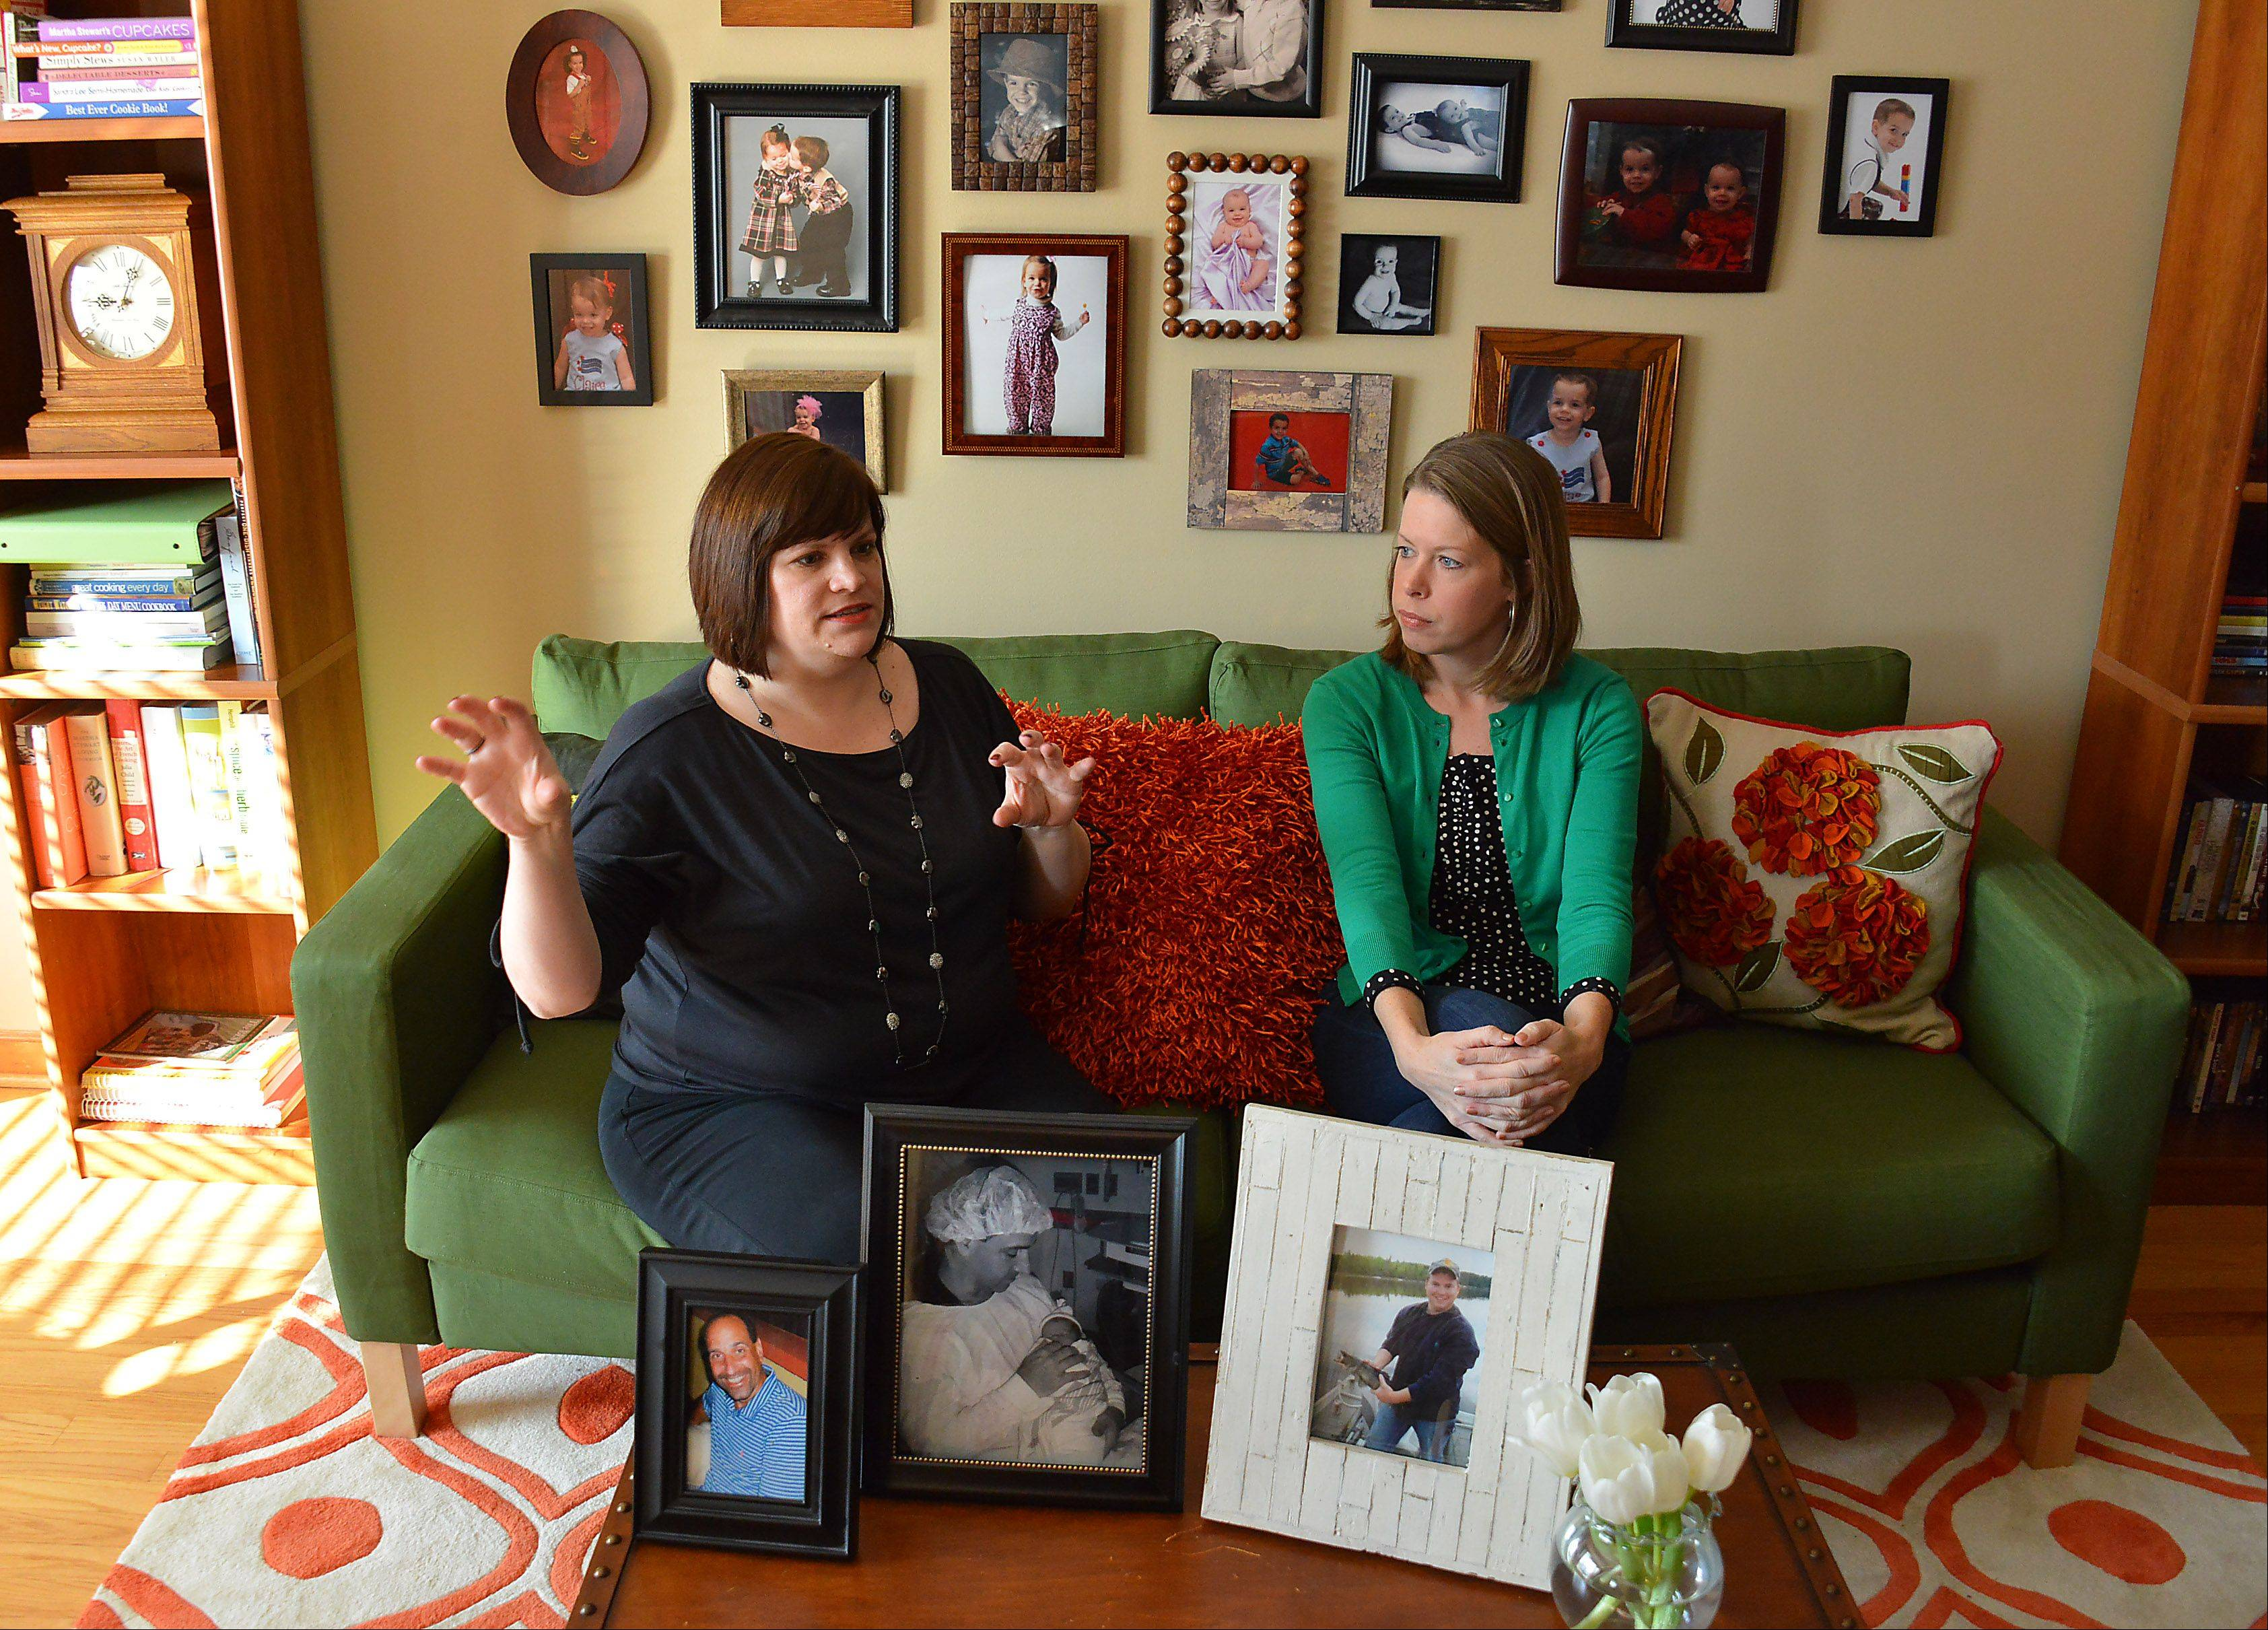 With photographs of their late husbands on the coffee table, Wendy Doyle Diez, left, and Laura Tully Dennis explain how they came together to start the Chicagoland Young Widowed Connection. The group hosts a Valentine & Wine event Saturday in Glenview.